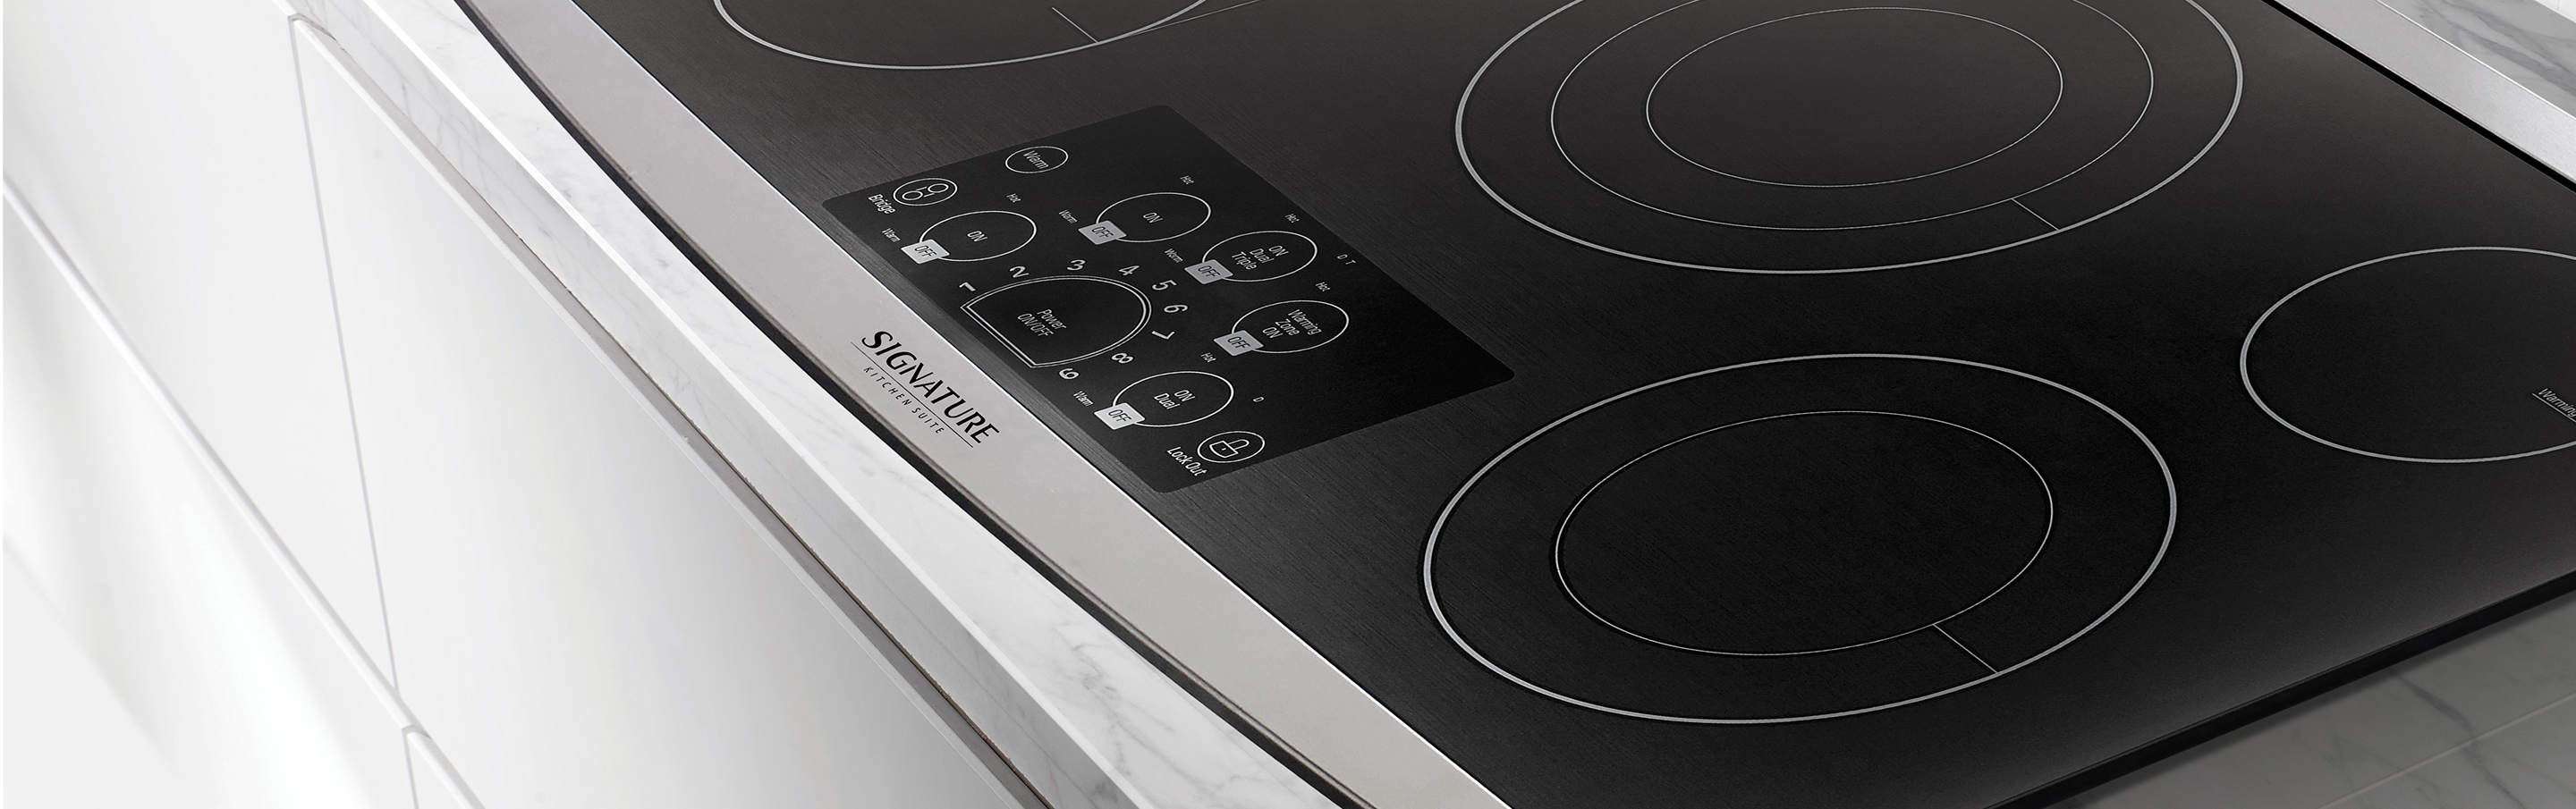 "36"" Electric Cooktop from Signature Kitchen Suite"